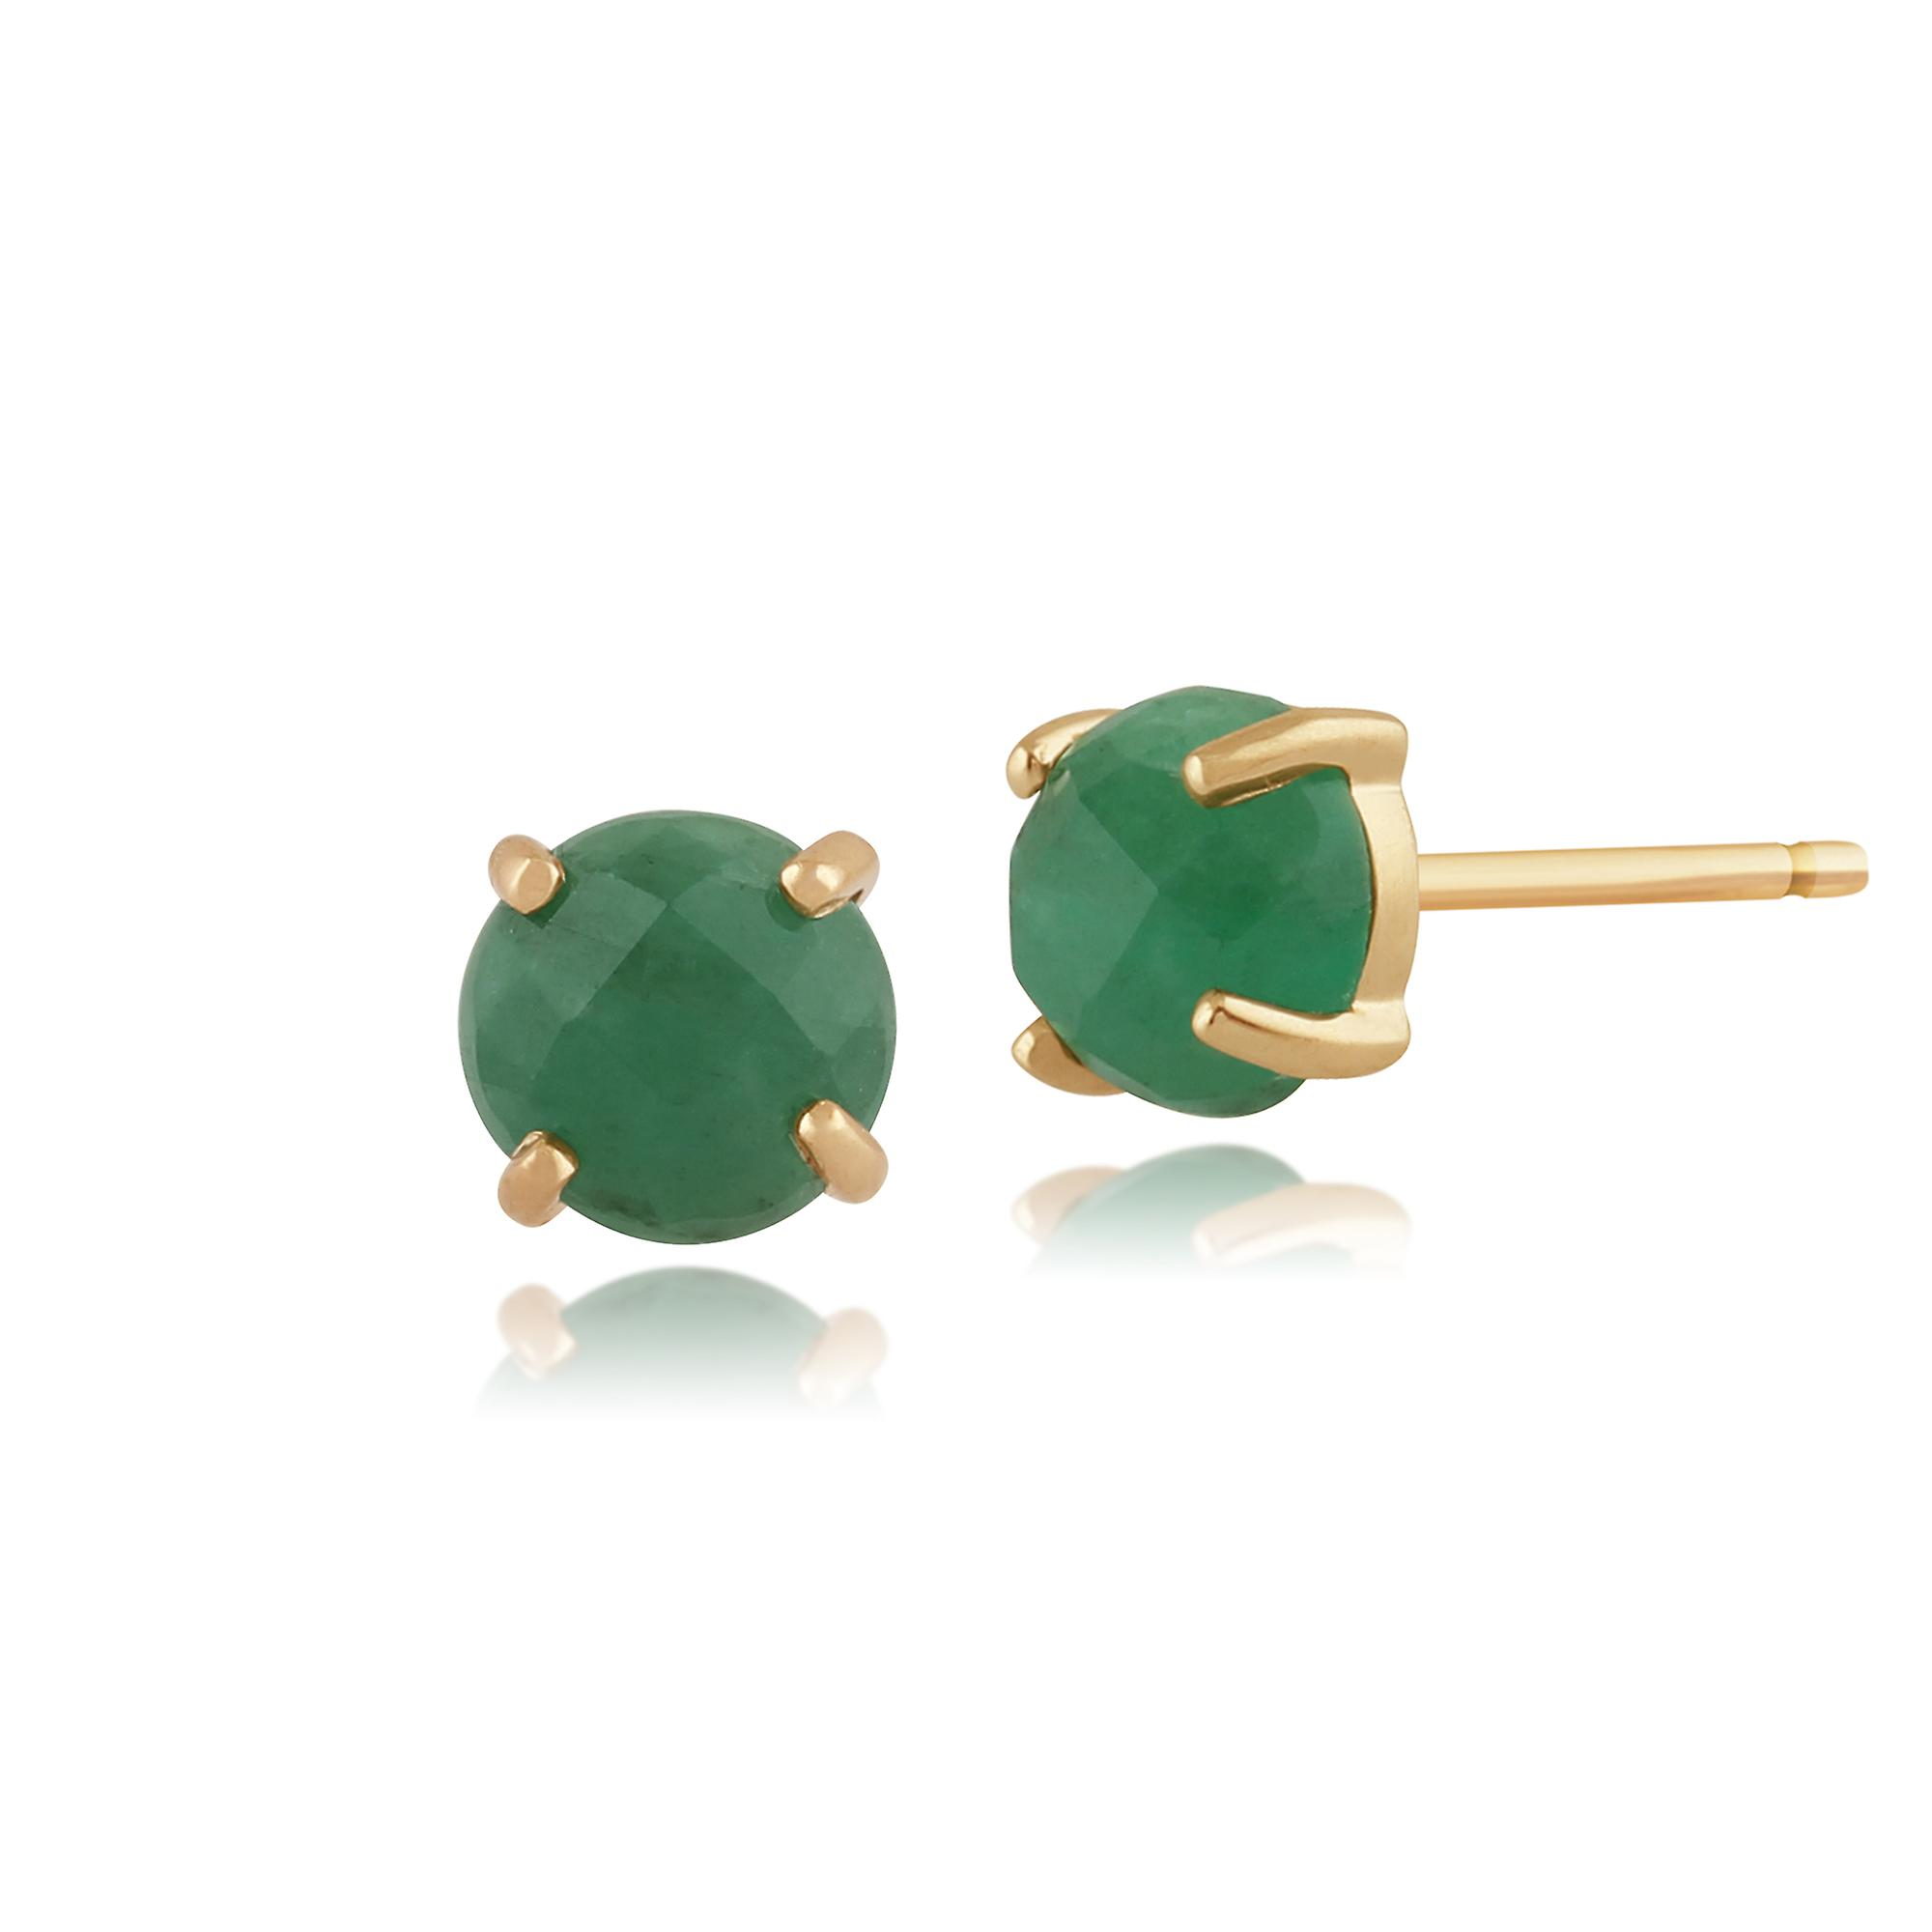 Amour Damier 9ct Yellow Gold 0.80ct Special Cut Emerald Stud Earrings